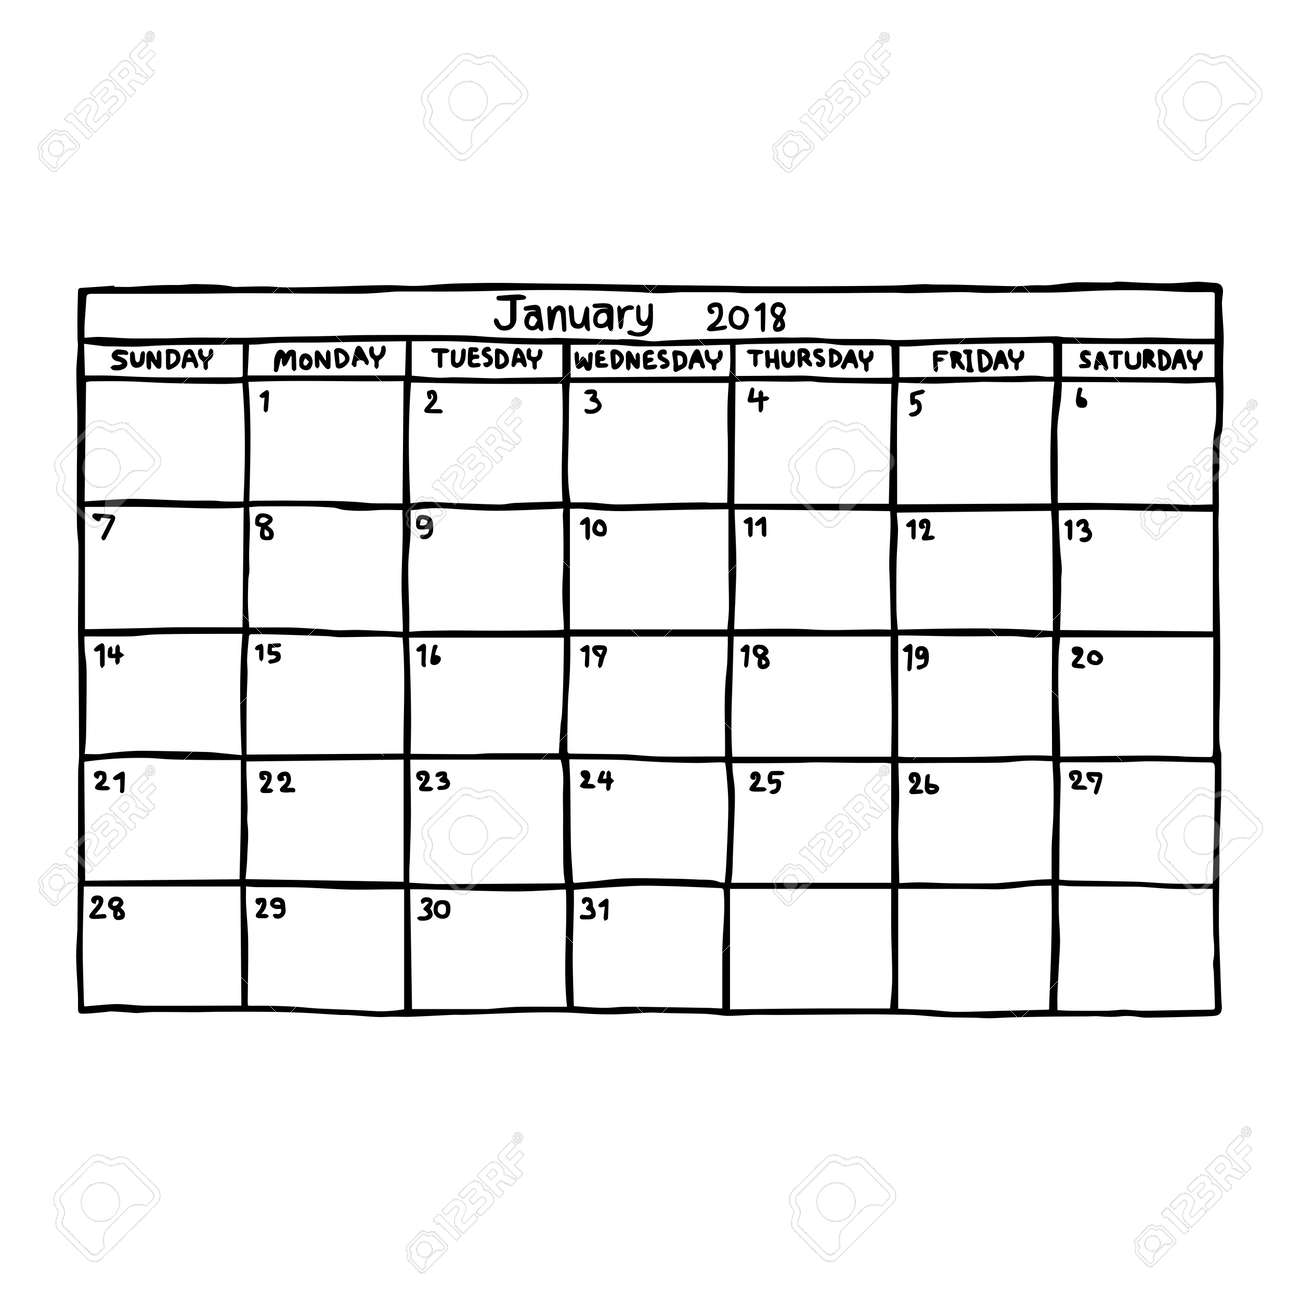 calendar january 2018 vector illustration sketch hand drawn with black lines isolated on white